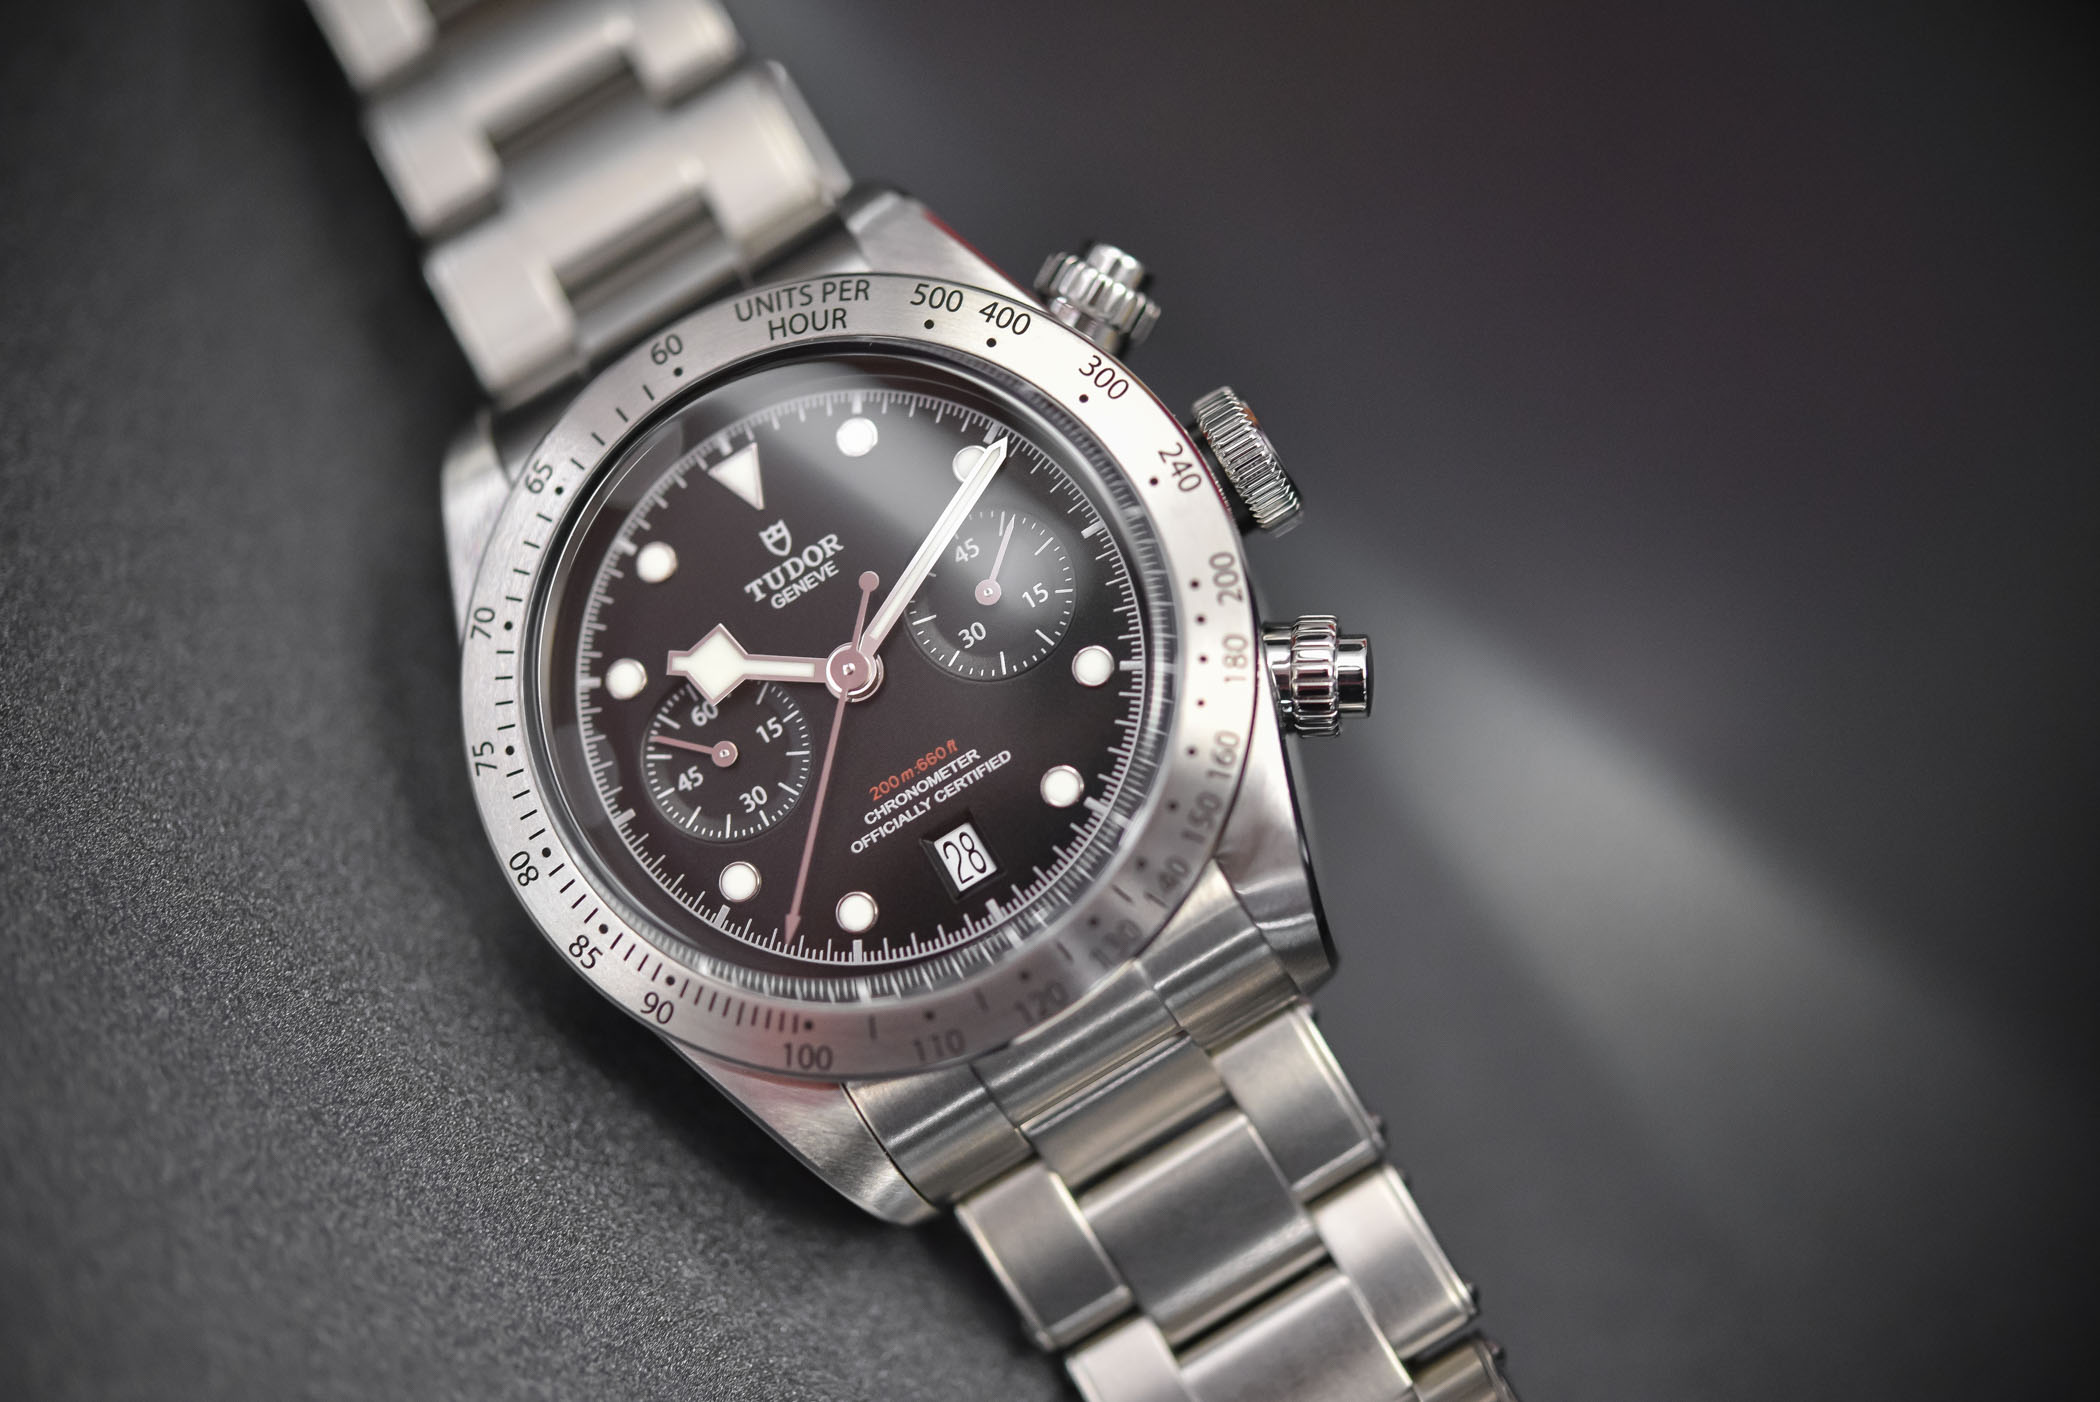 Review tudor heritage black bay chrono m79350 specs - Tudor dive watch price ...